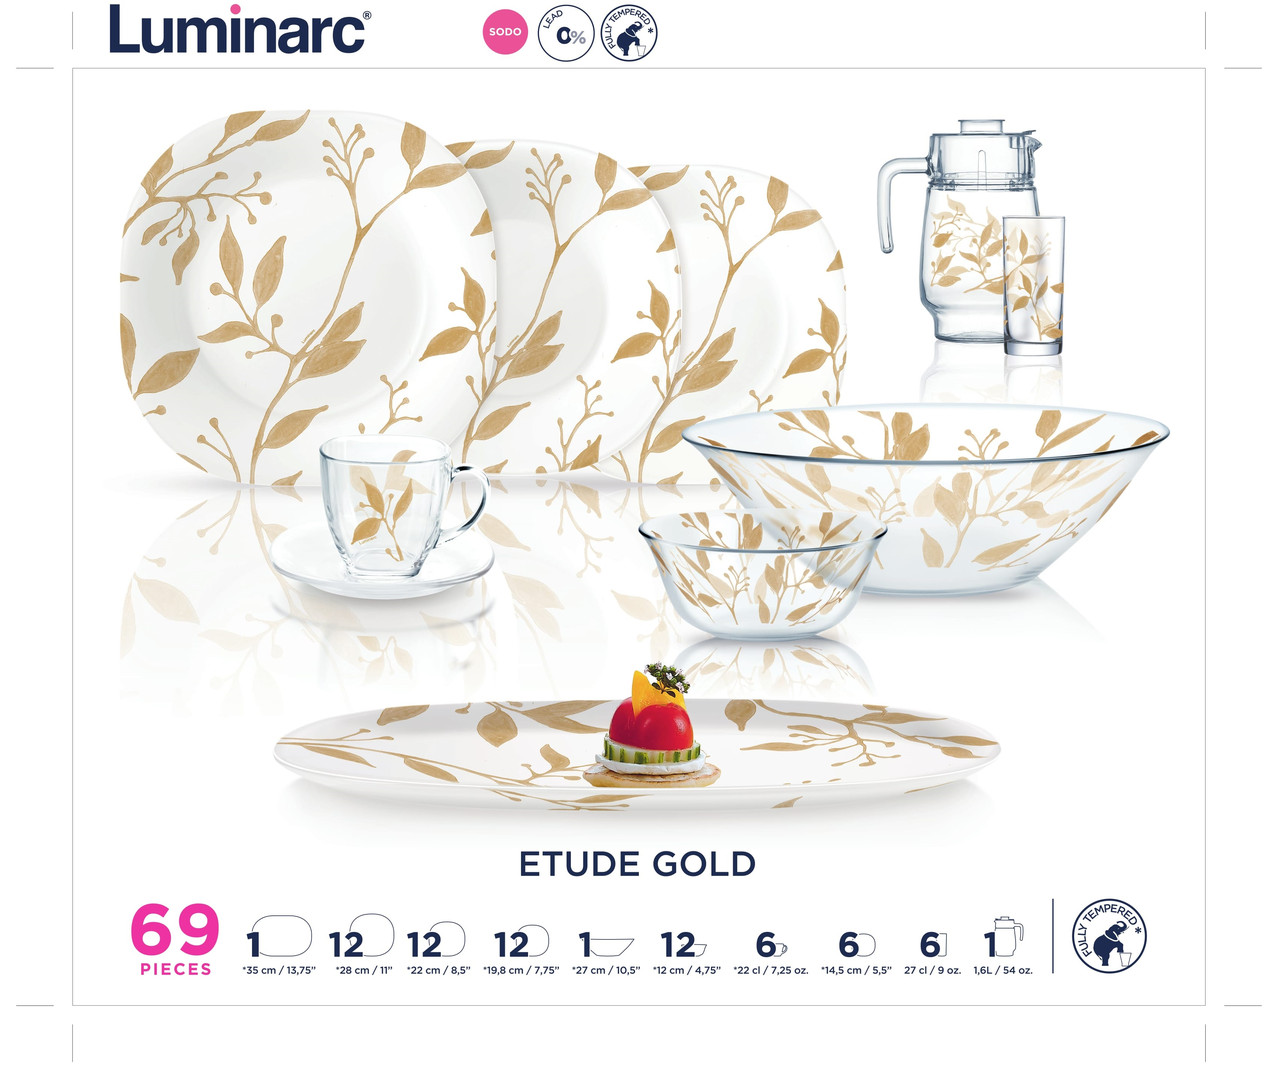 Столовый сервиз Luminarc ETUDE GOLD 69пр. на 12персон